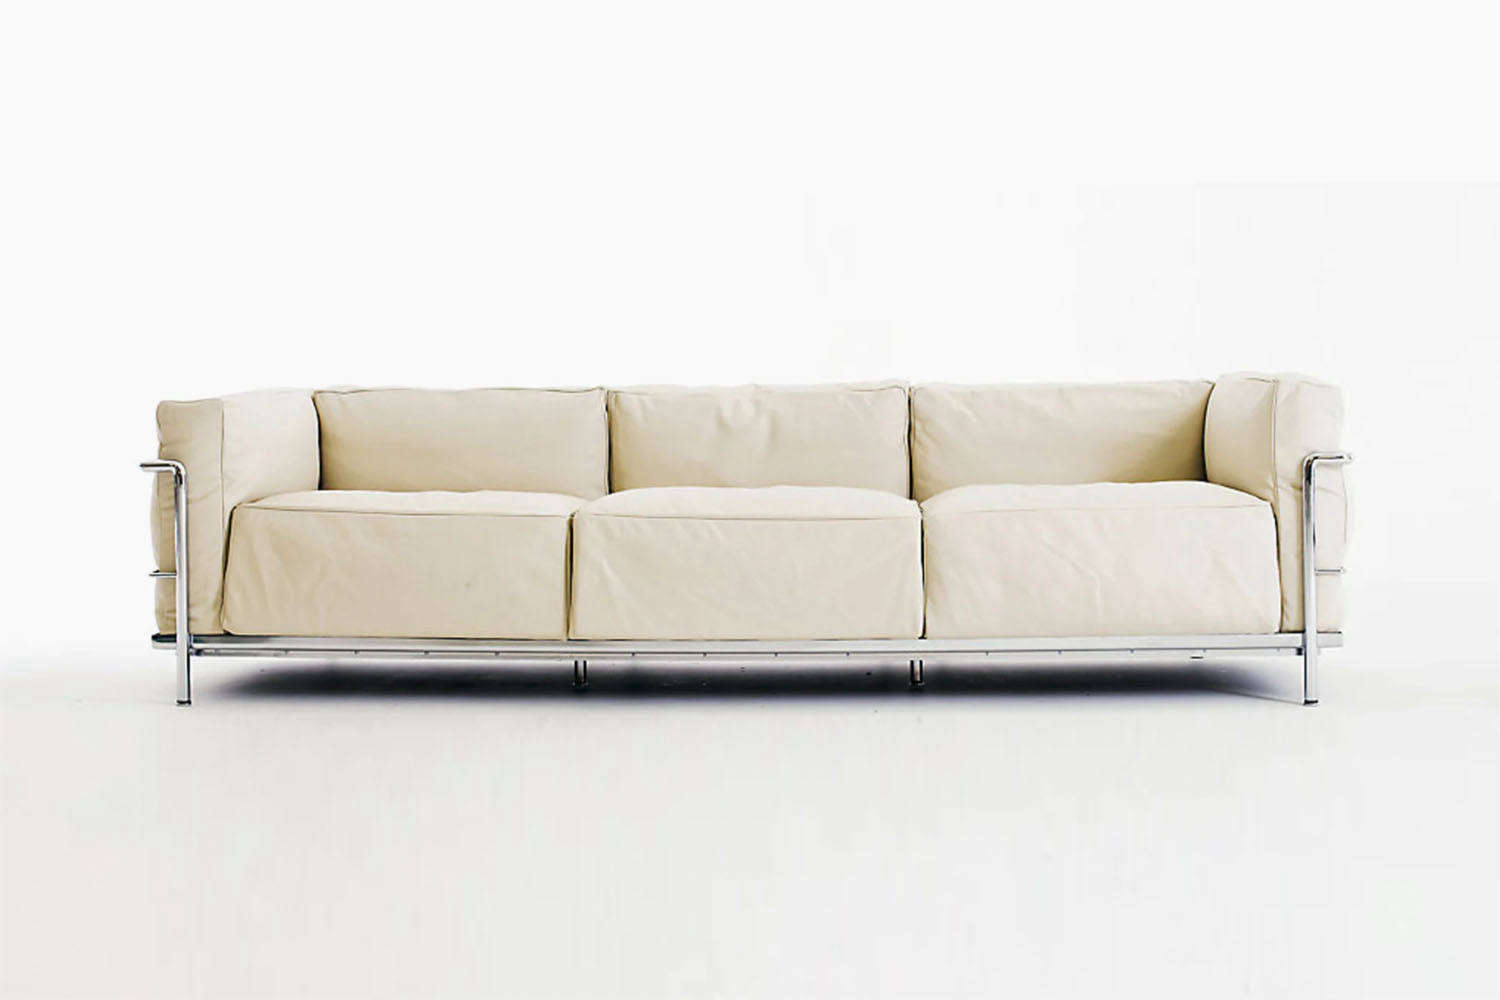 An iconic collaborative design between architects Charlotte Perriand, Le Corbusier, and Pierre Jeanneret for Cassina, the LC3 Grand Modele Sofa starts at $loading=